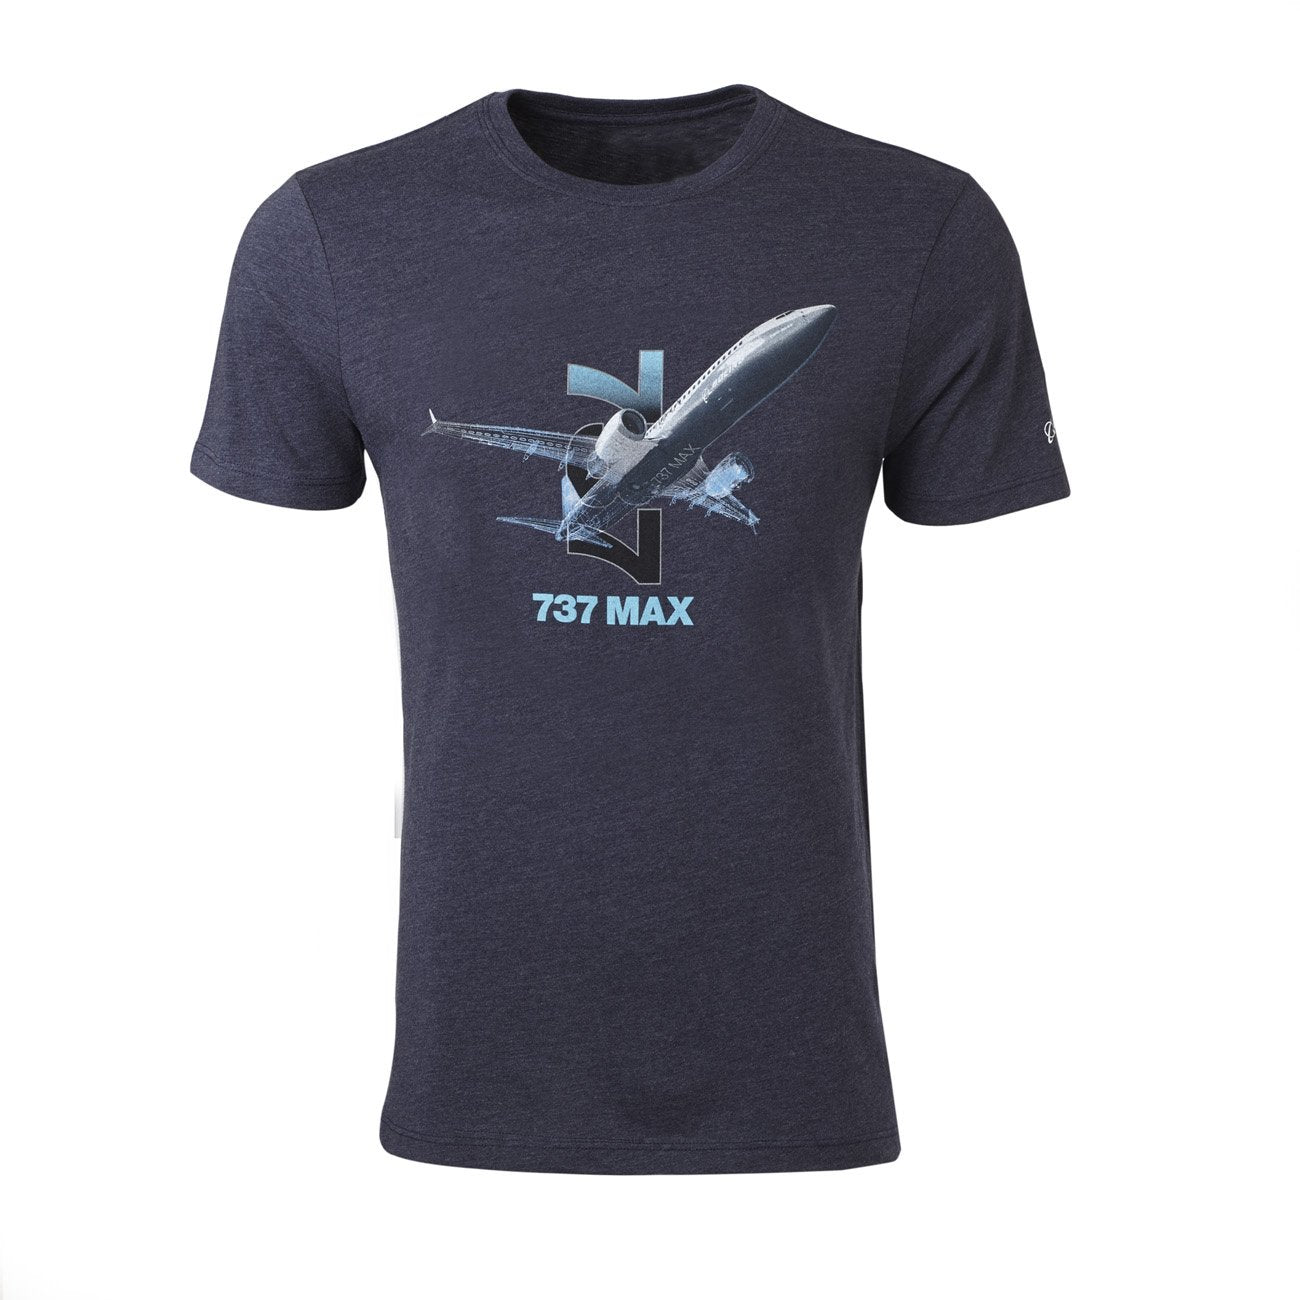 S17 737 MAX X-Ray Graphic T-Shirt